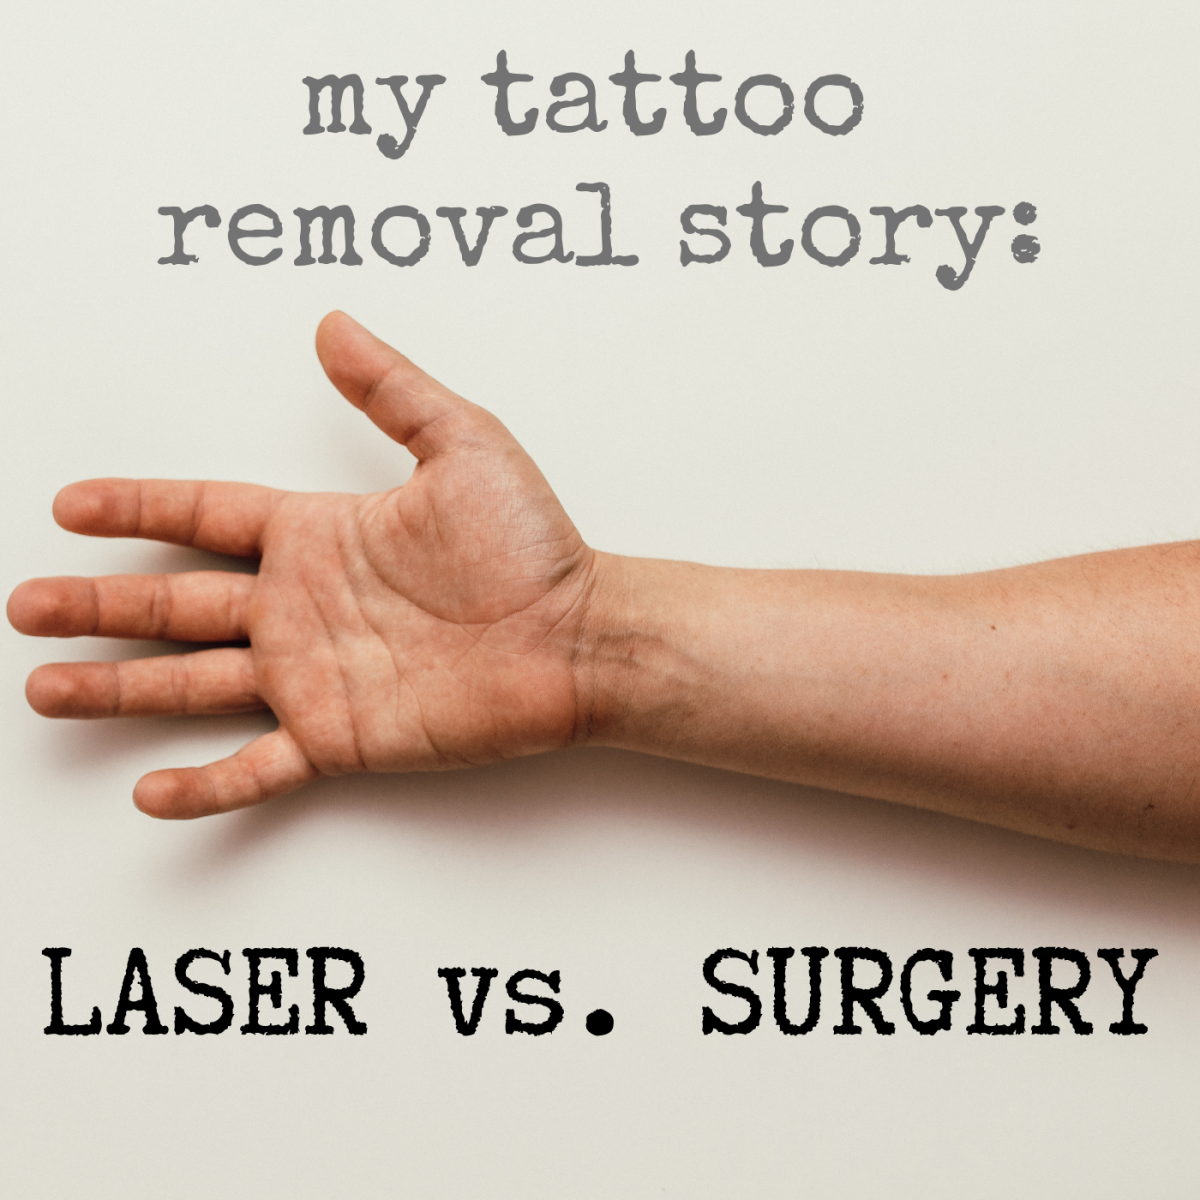 I tried both laser removal and surgical excision to remove my tattoos: Here's my story (with photos).